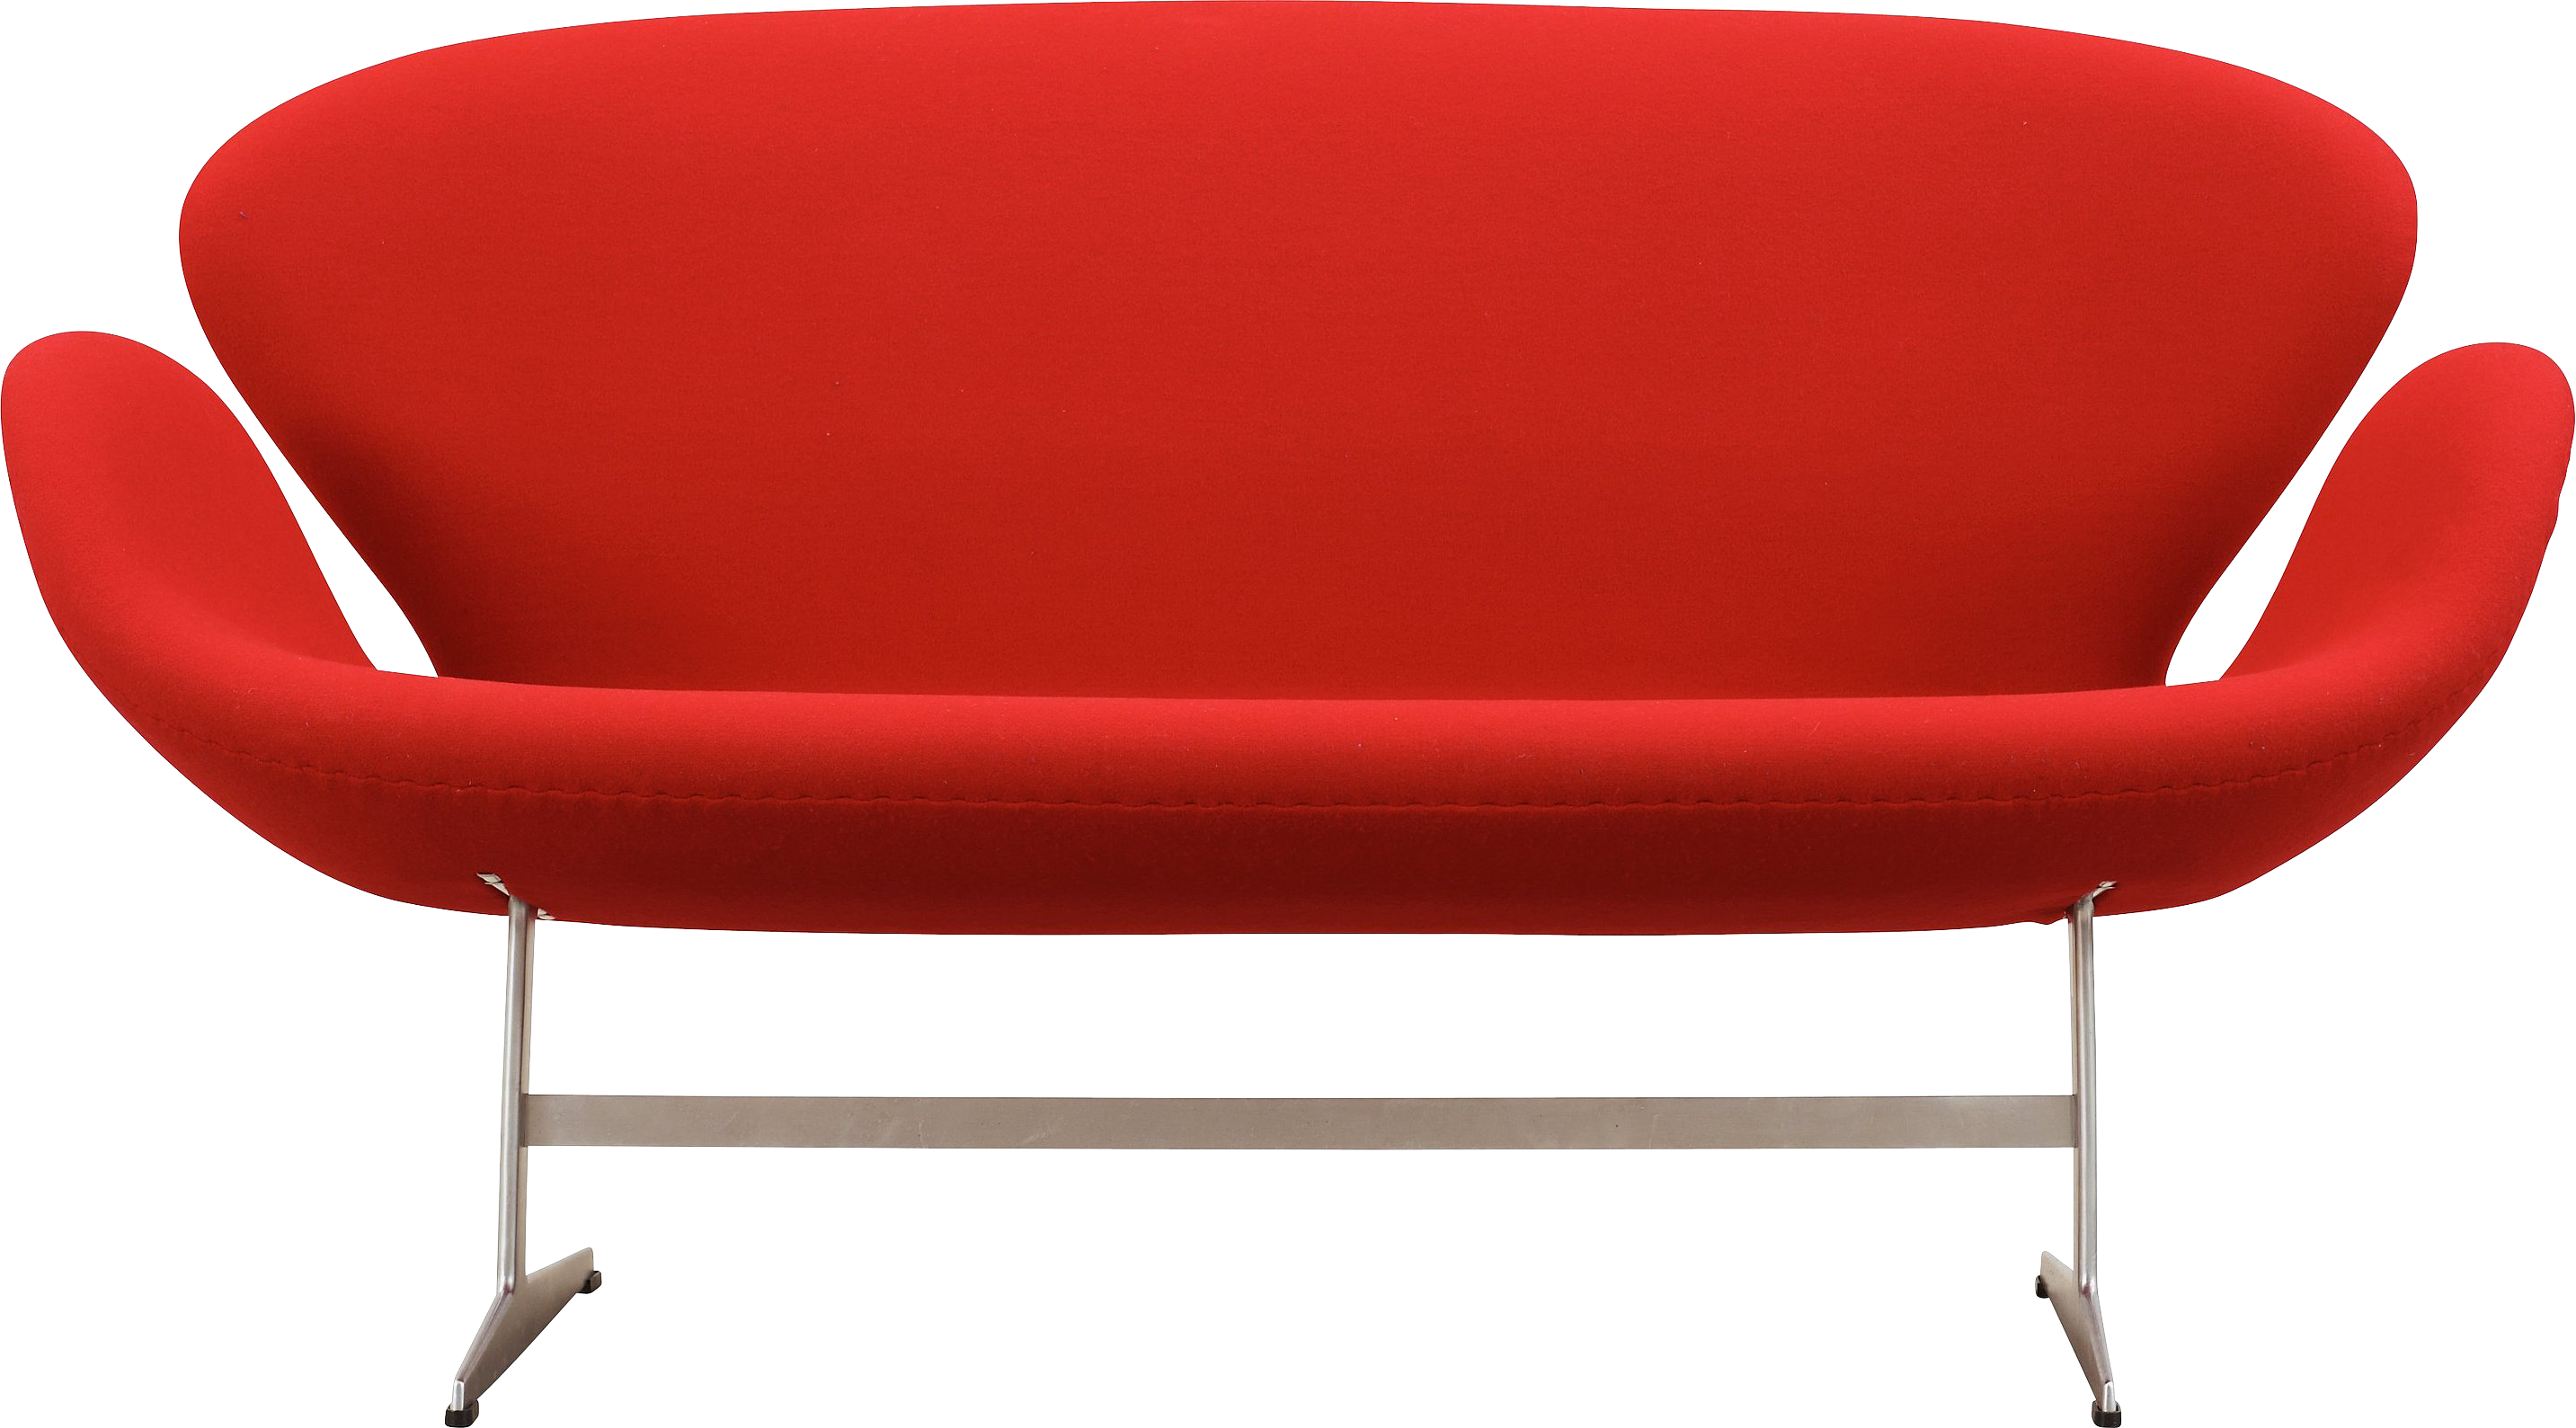 Furniture clipart red couch. Sofa png images free